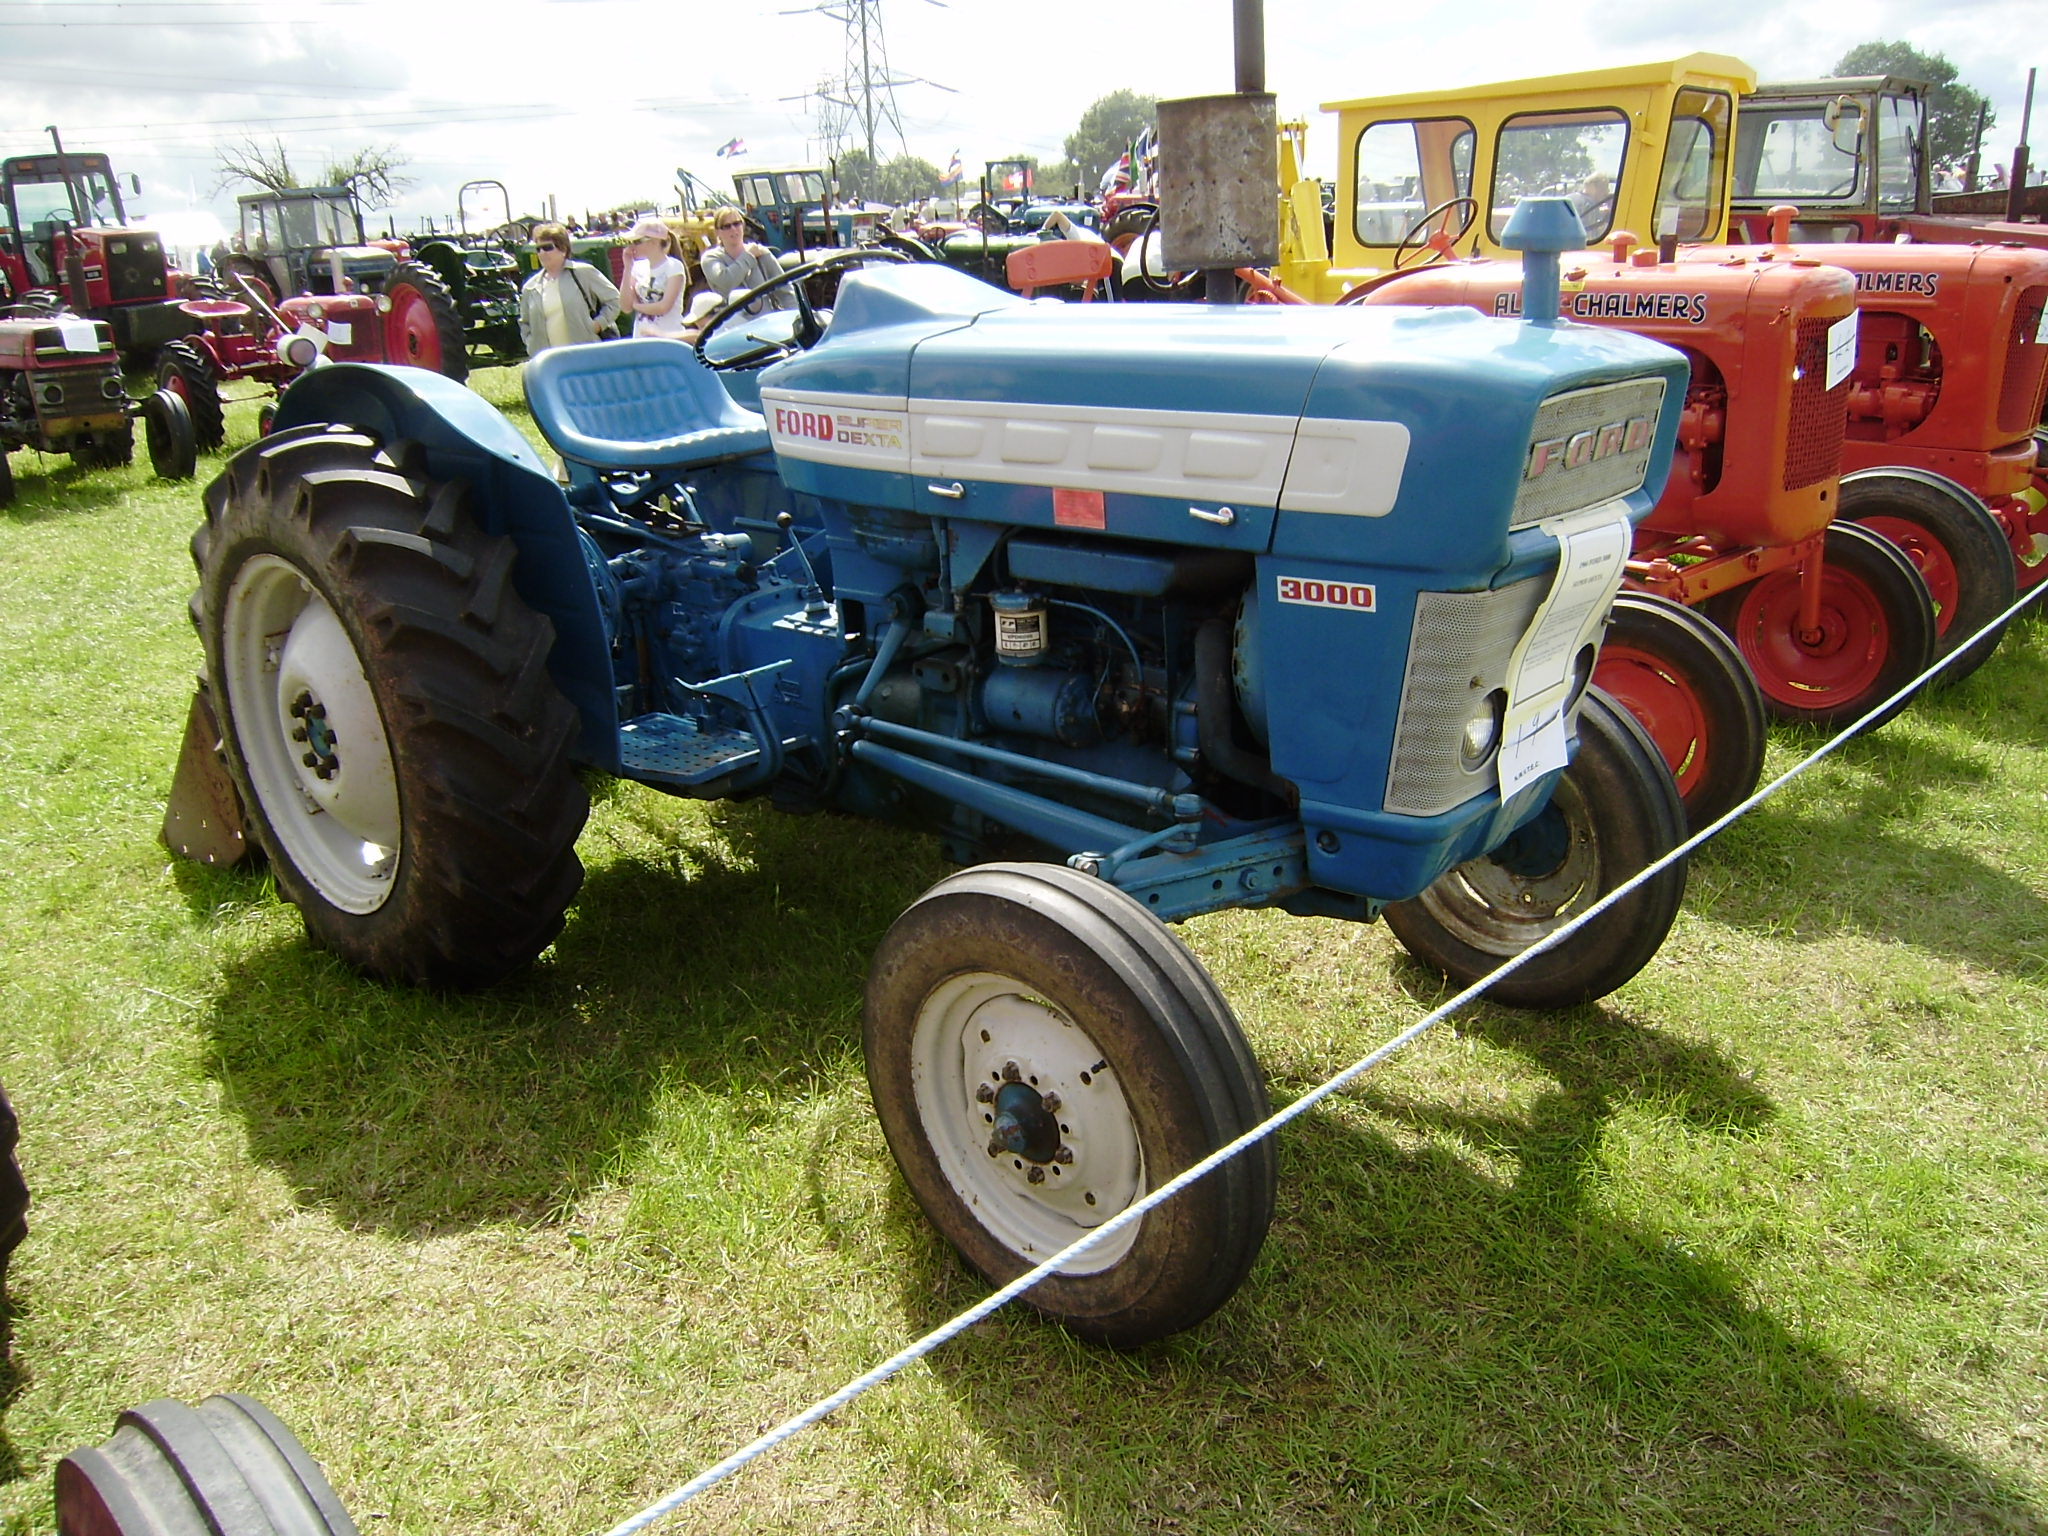 Ford 3000 Tractor Grill : Fordson dexta tractor construction plant wiki the